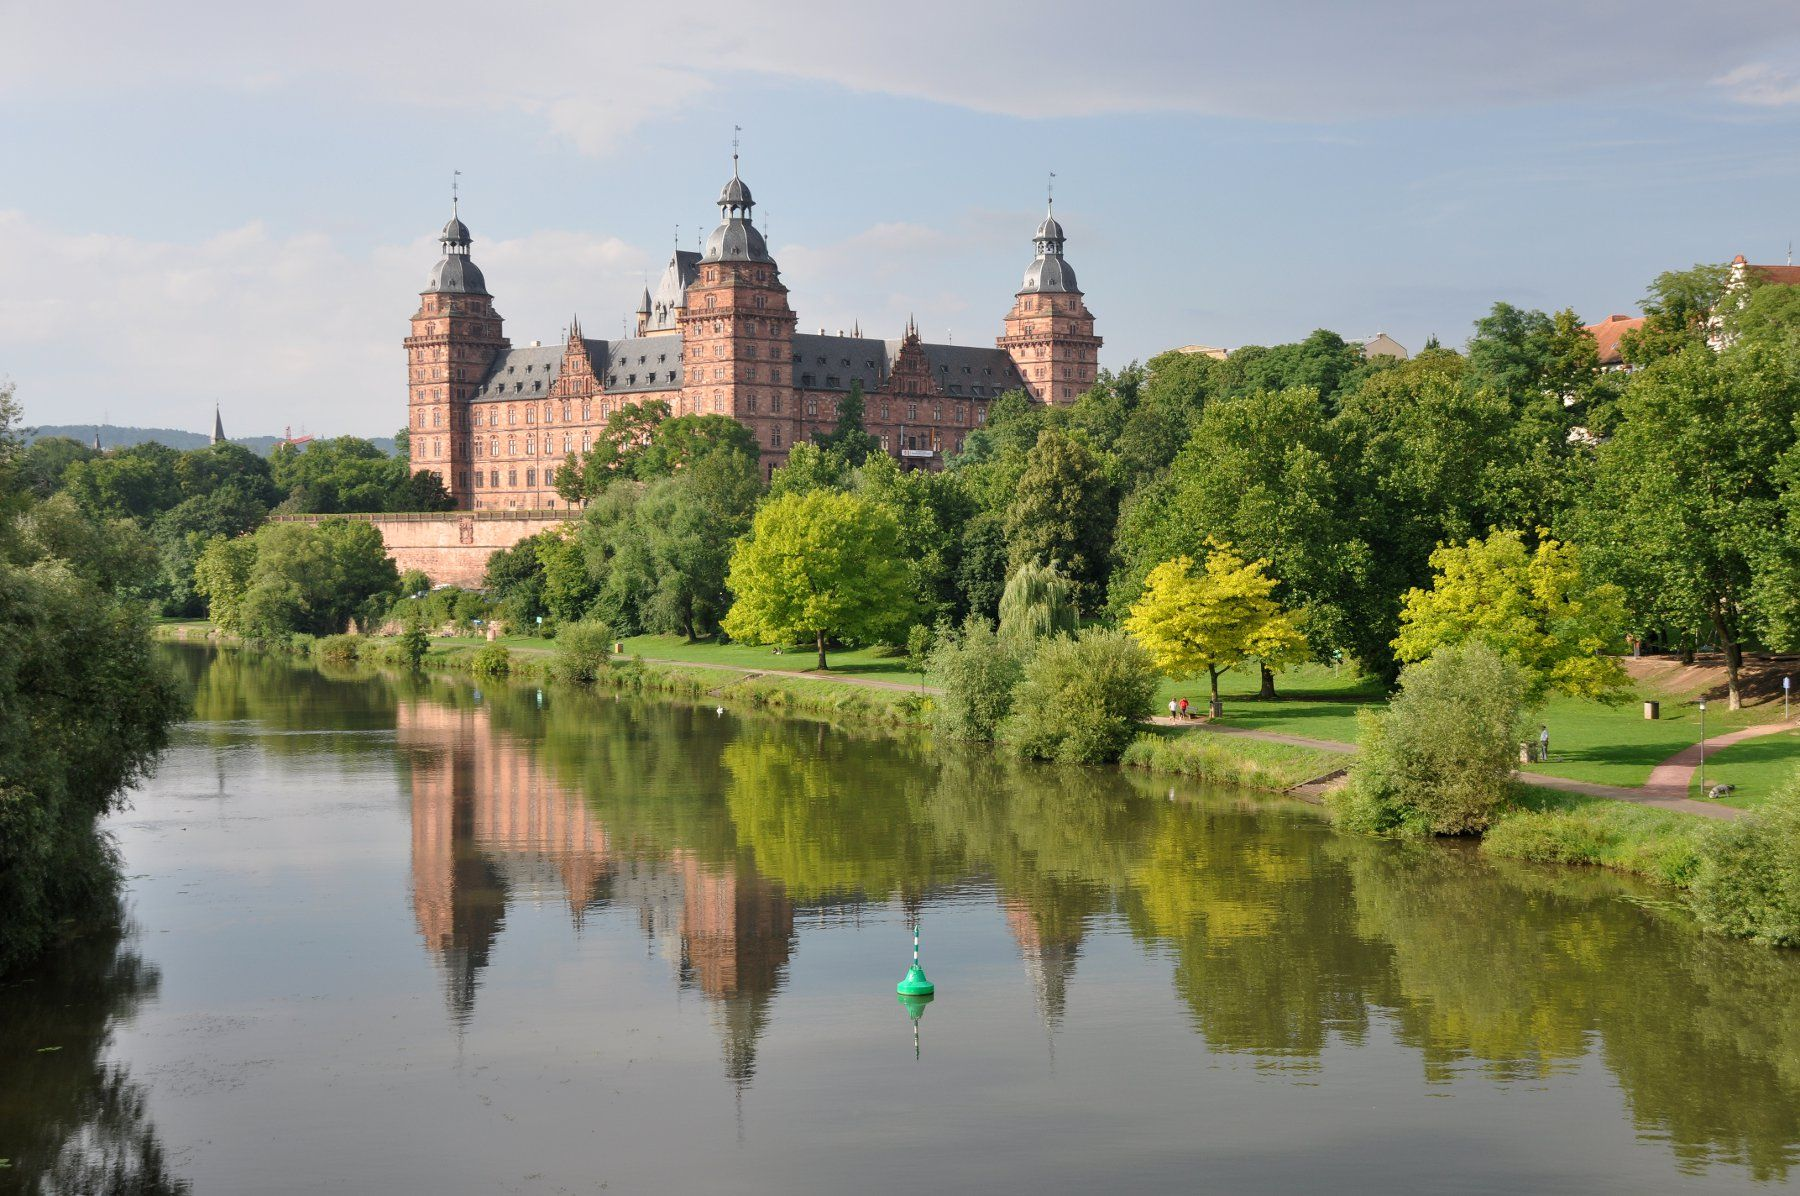 Schloss Johannisburg Aschaffenburg castle! This is in the town my grandparents live!